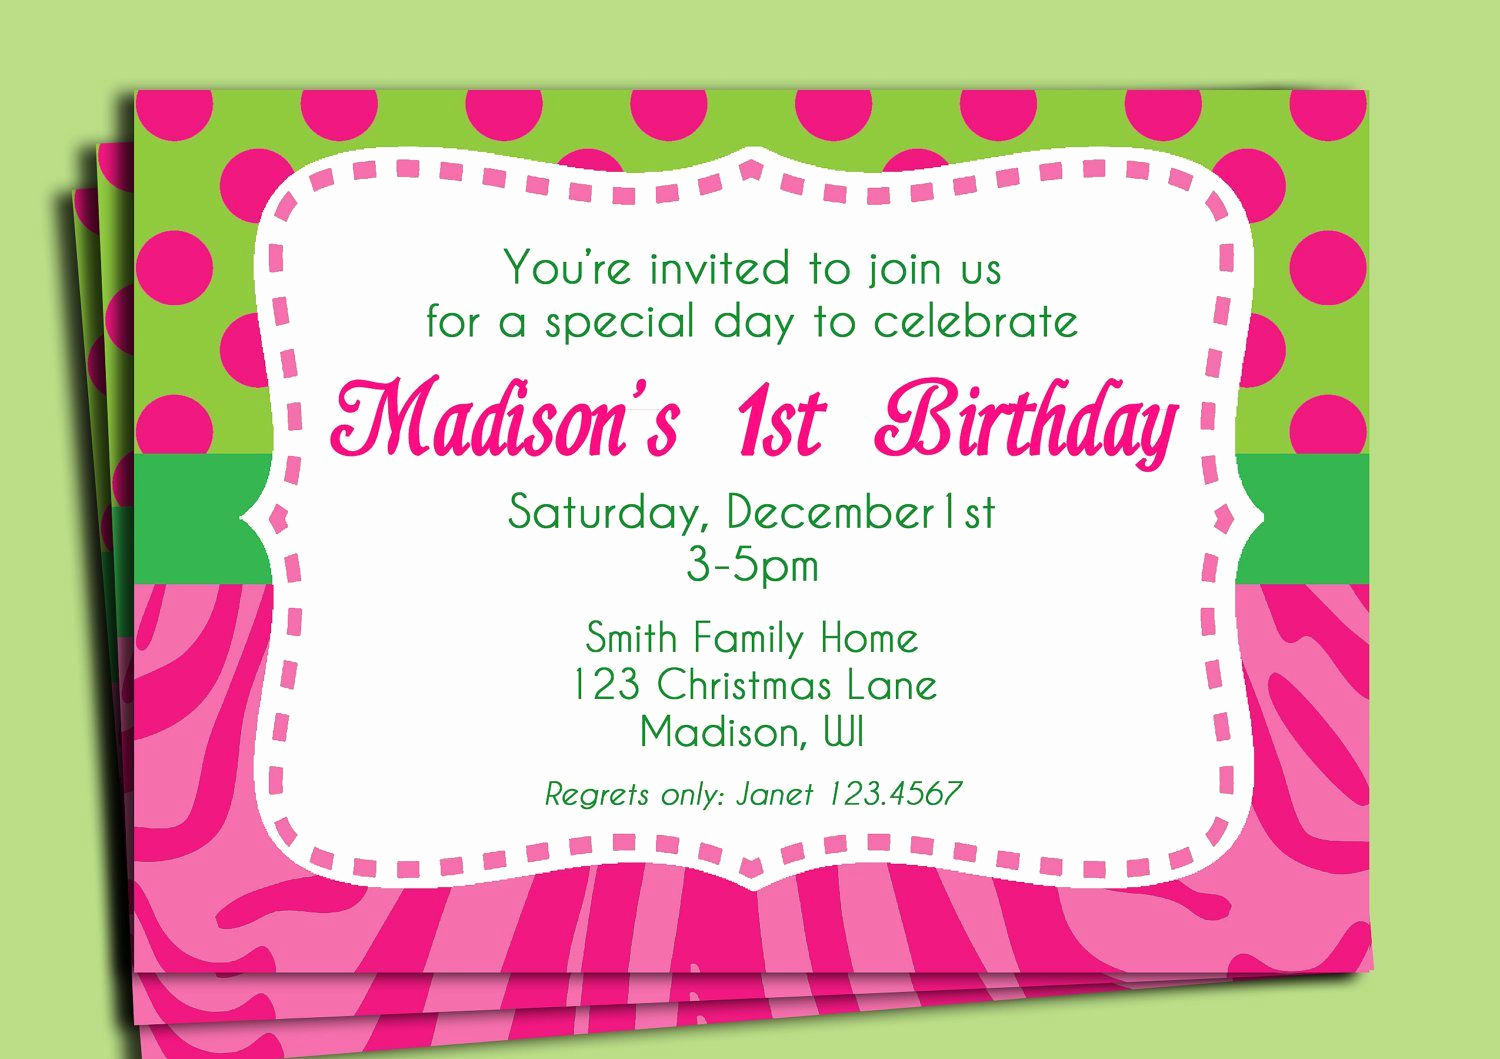 11th Birthday Invitation Wording Inspirational Birthday Invitation Wording for 11 Year Old